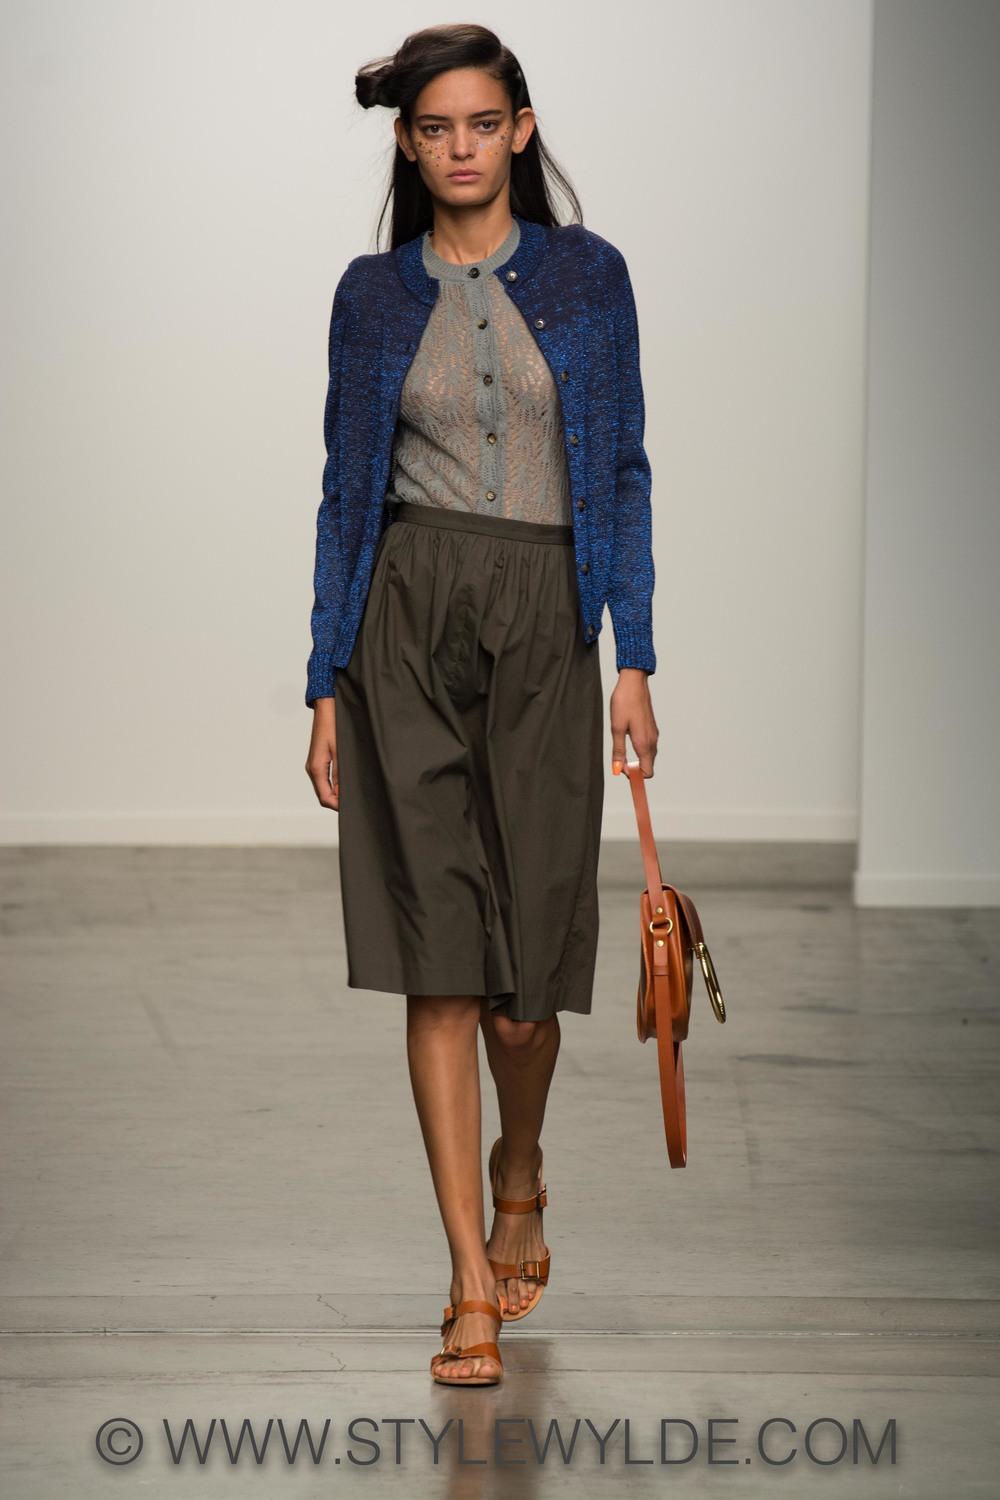 StyleWylde_adetacher_FOH_SS15_sw (14 of 37).jpg